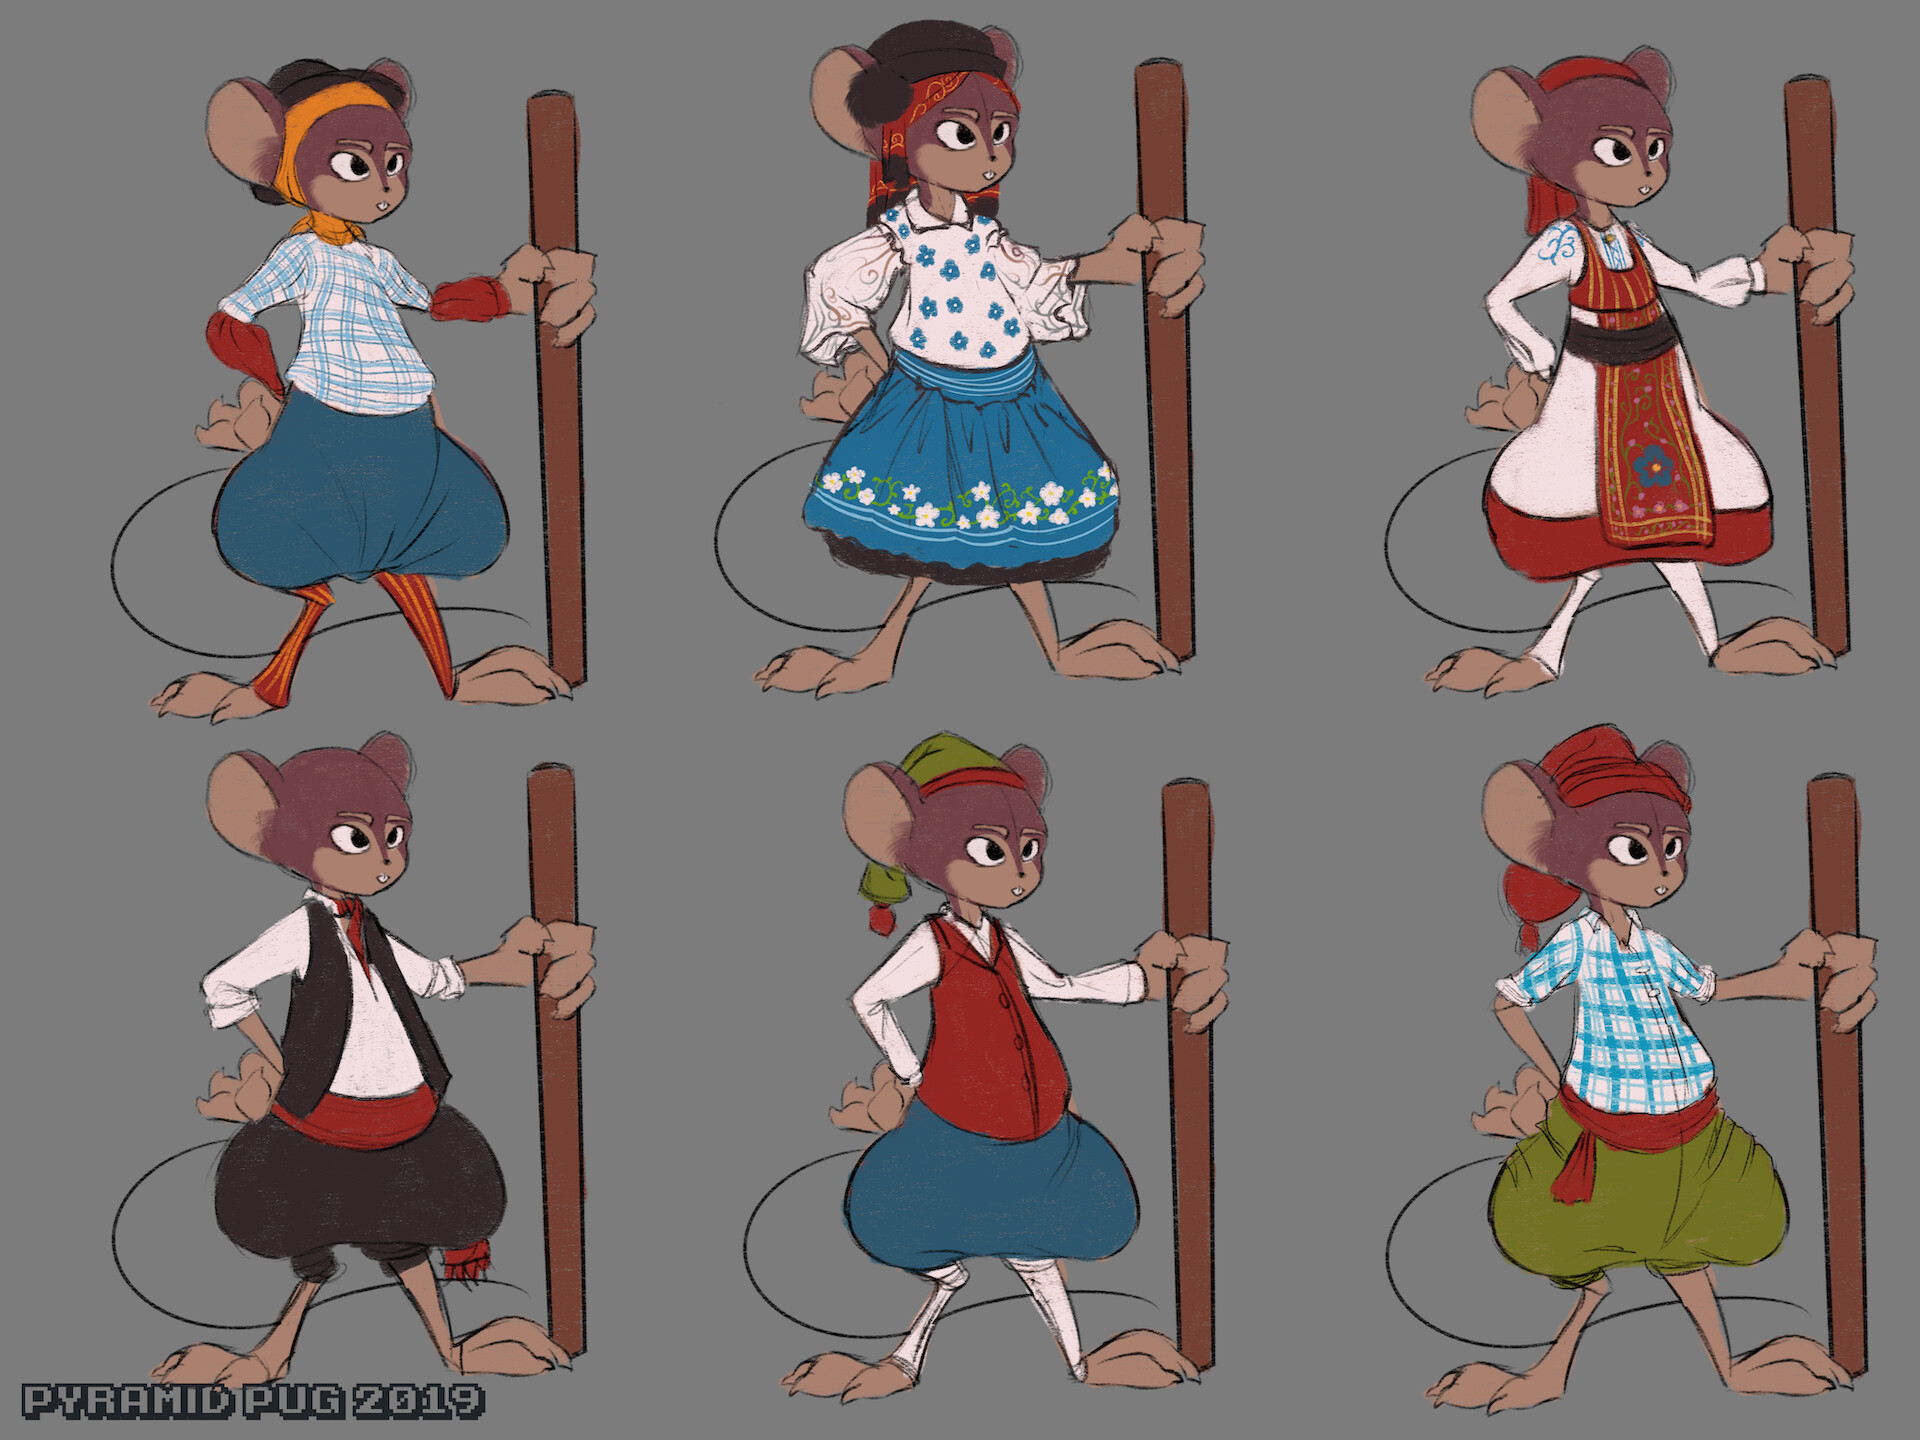 Clothing study of traditional clothes from my country